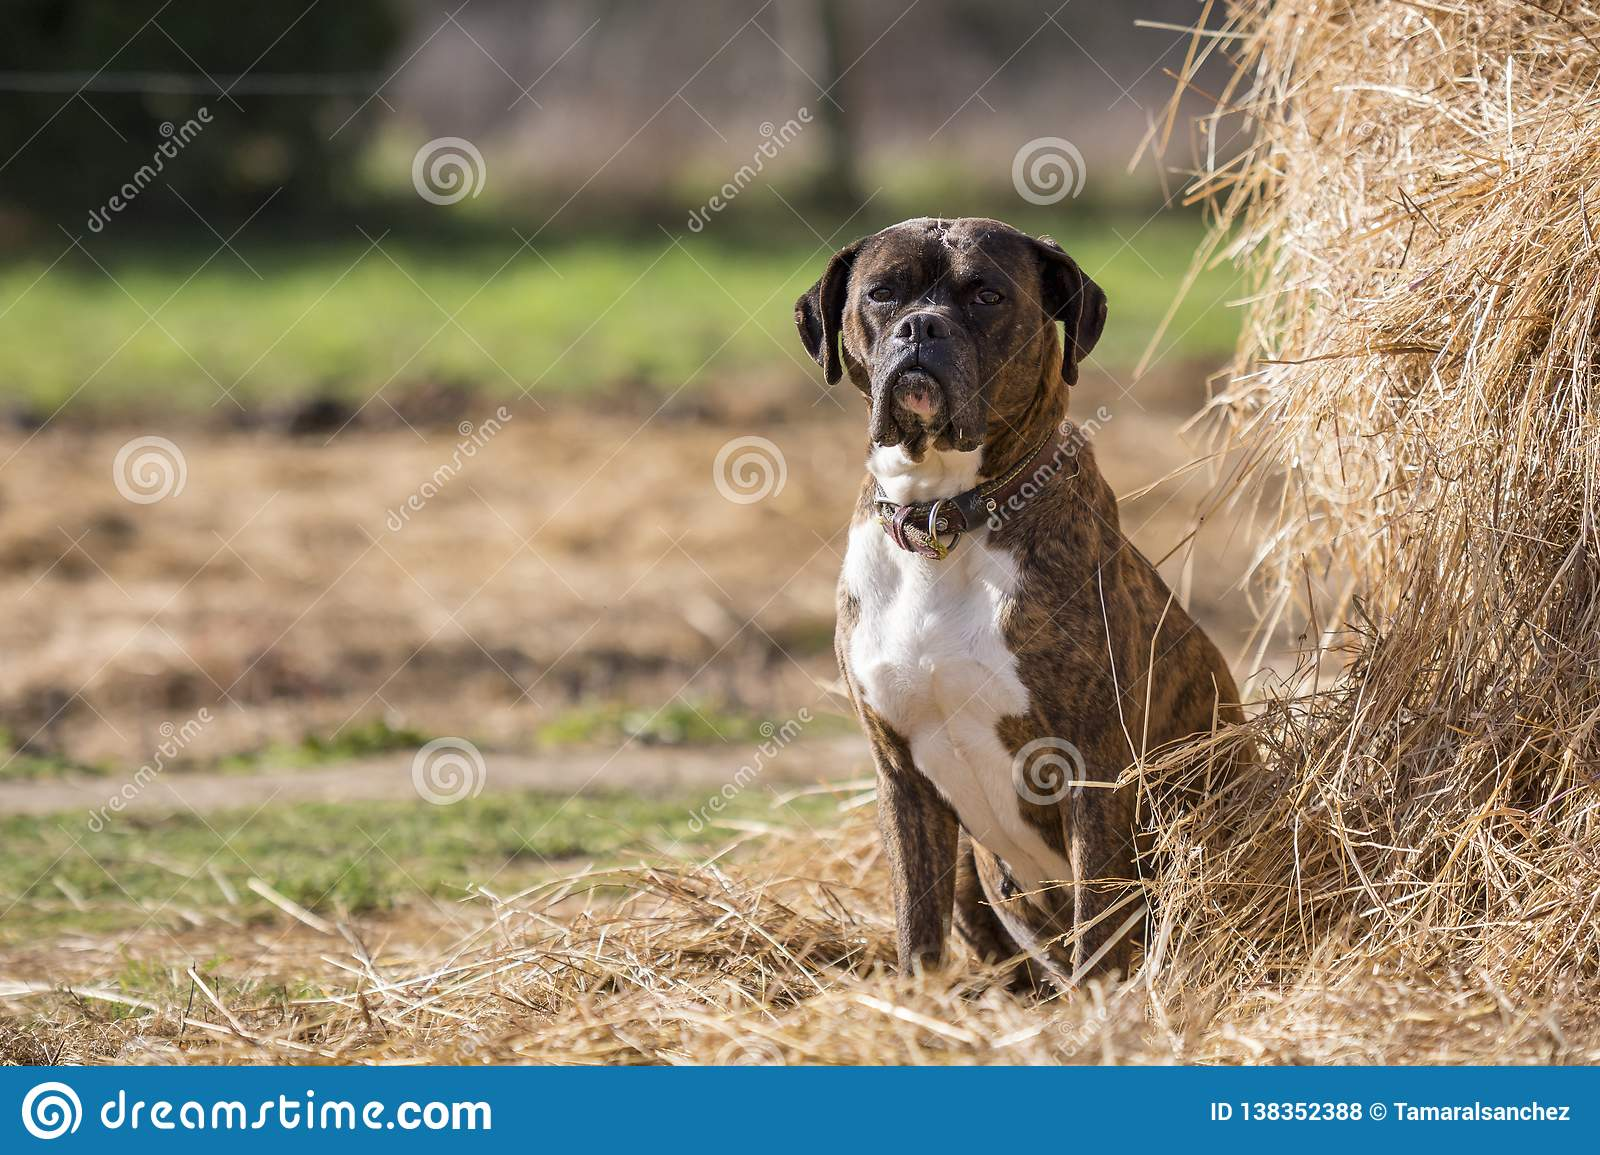 Photo of a Boxer dog in the field next to a heap of straw